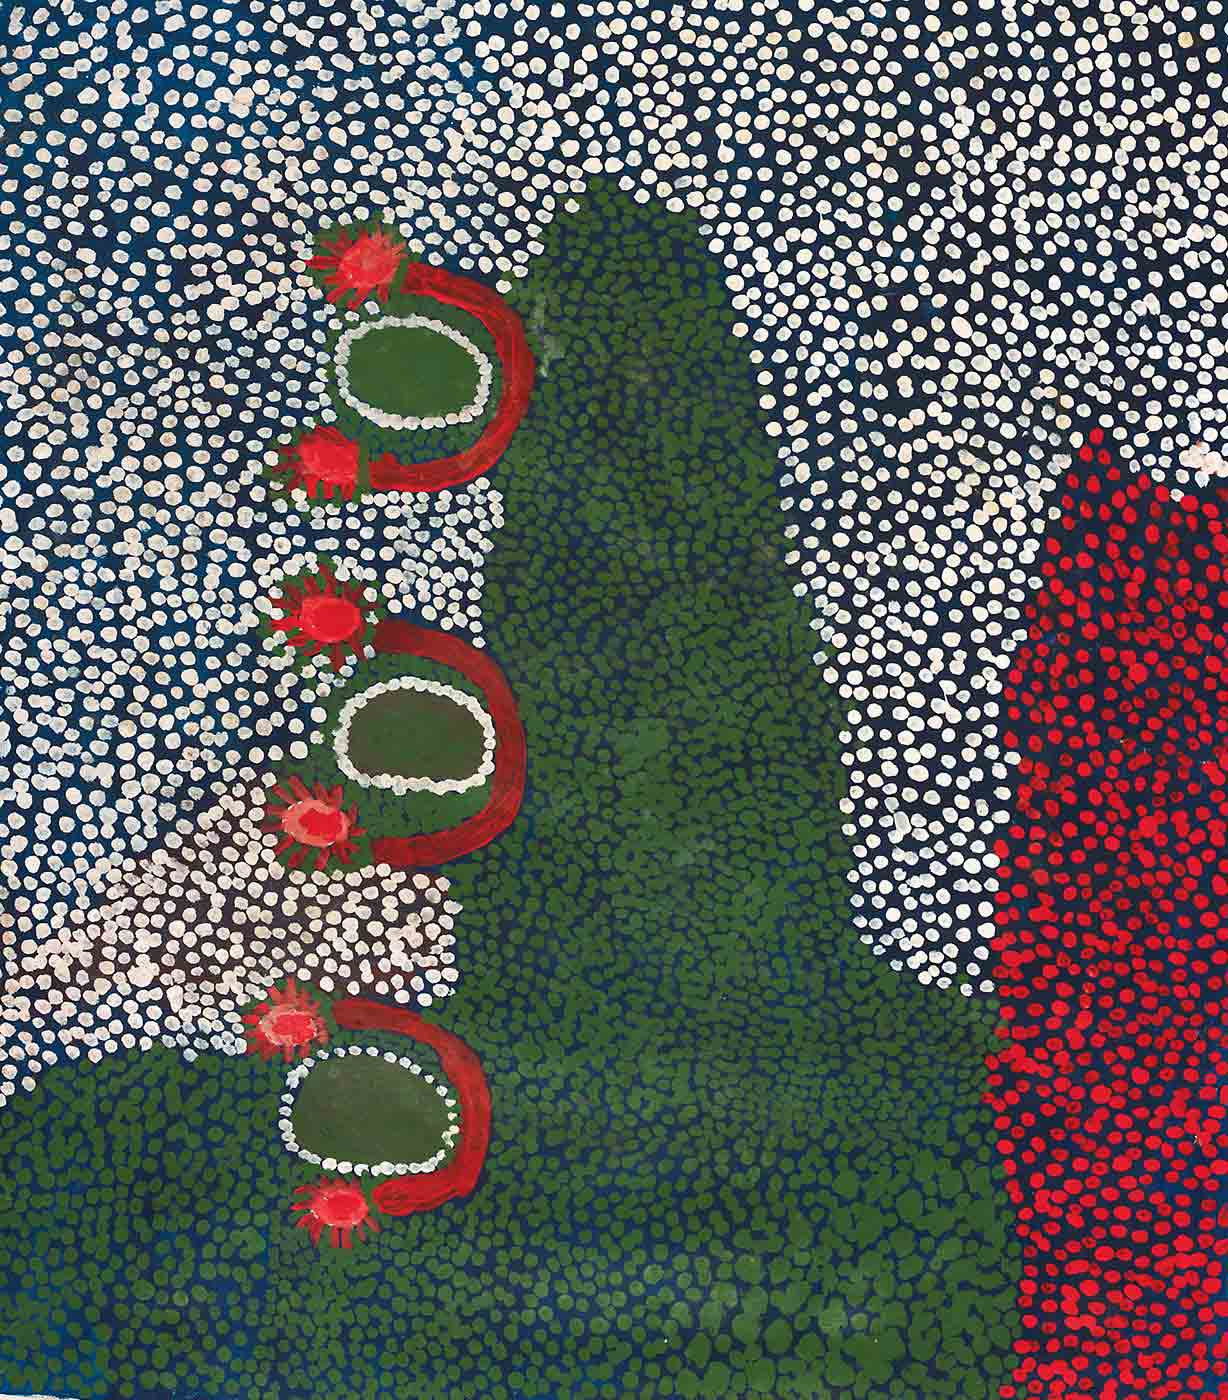 A dot painting made with acrylic paint on canvas. The painting has a dark blue background with three central oval shapes in green. Around each of these green oval shapes is an outline of white dots. Around that outline is a red semi circle with sun shapes at either end. Dots fill the rest of the painting. One side has white dots and the other side has a section of green dots and a smaller section of red dots in the corner. The different coloured dots meet in the centre creating a wavy line.